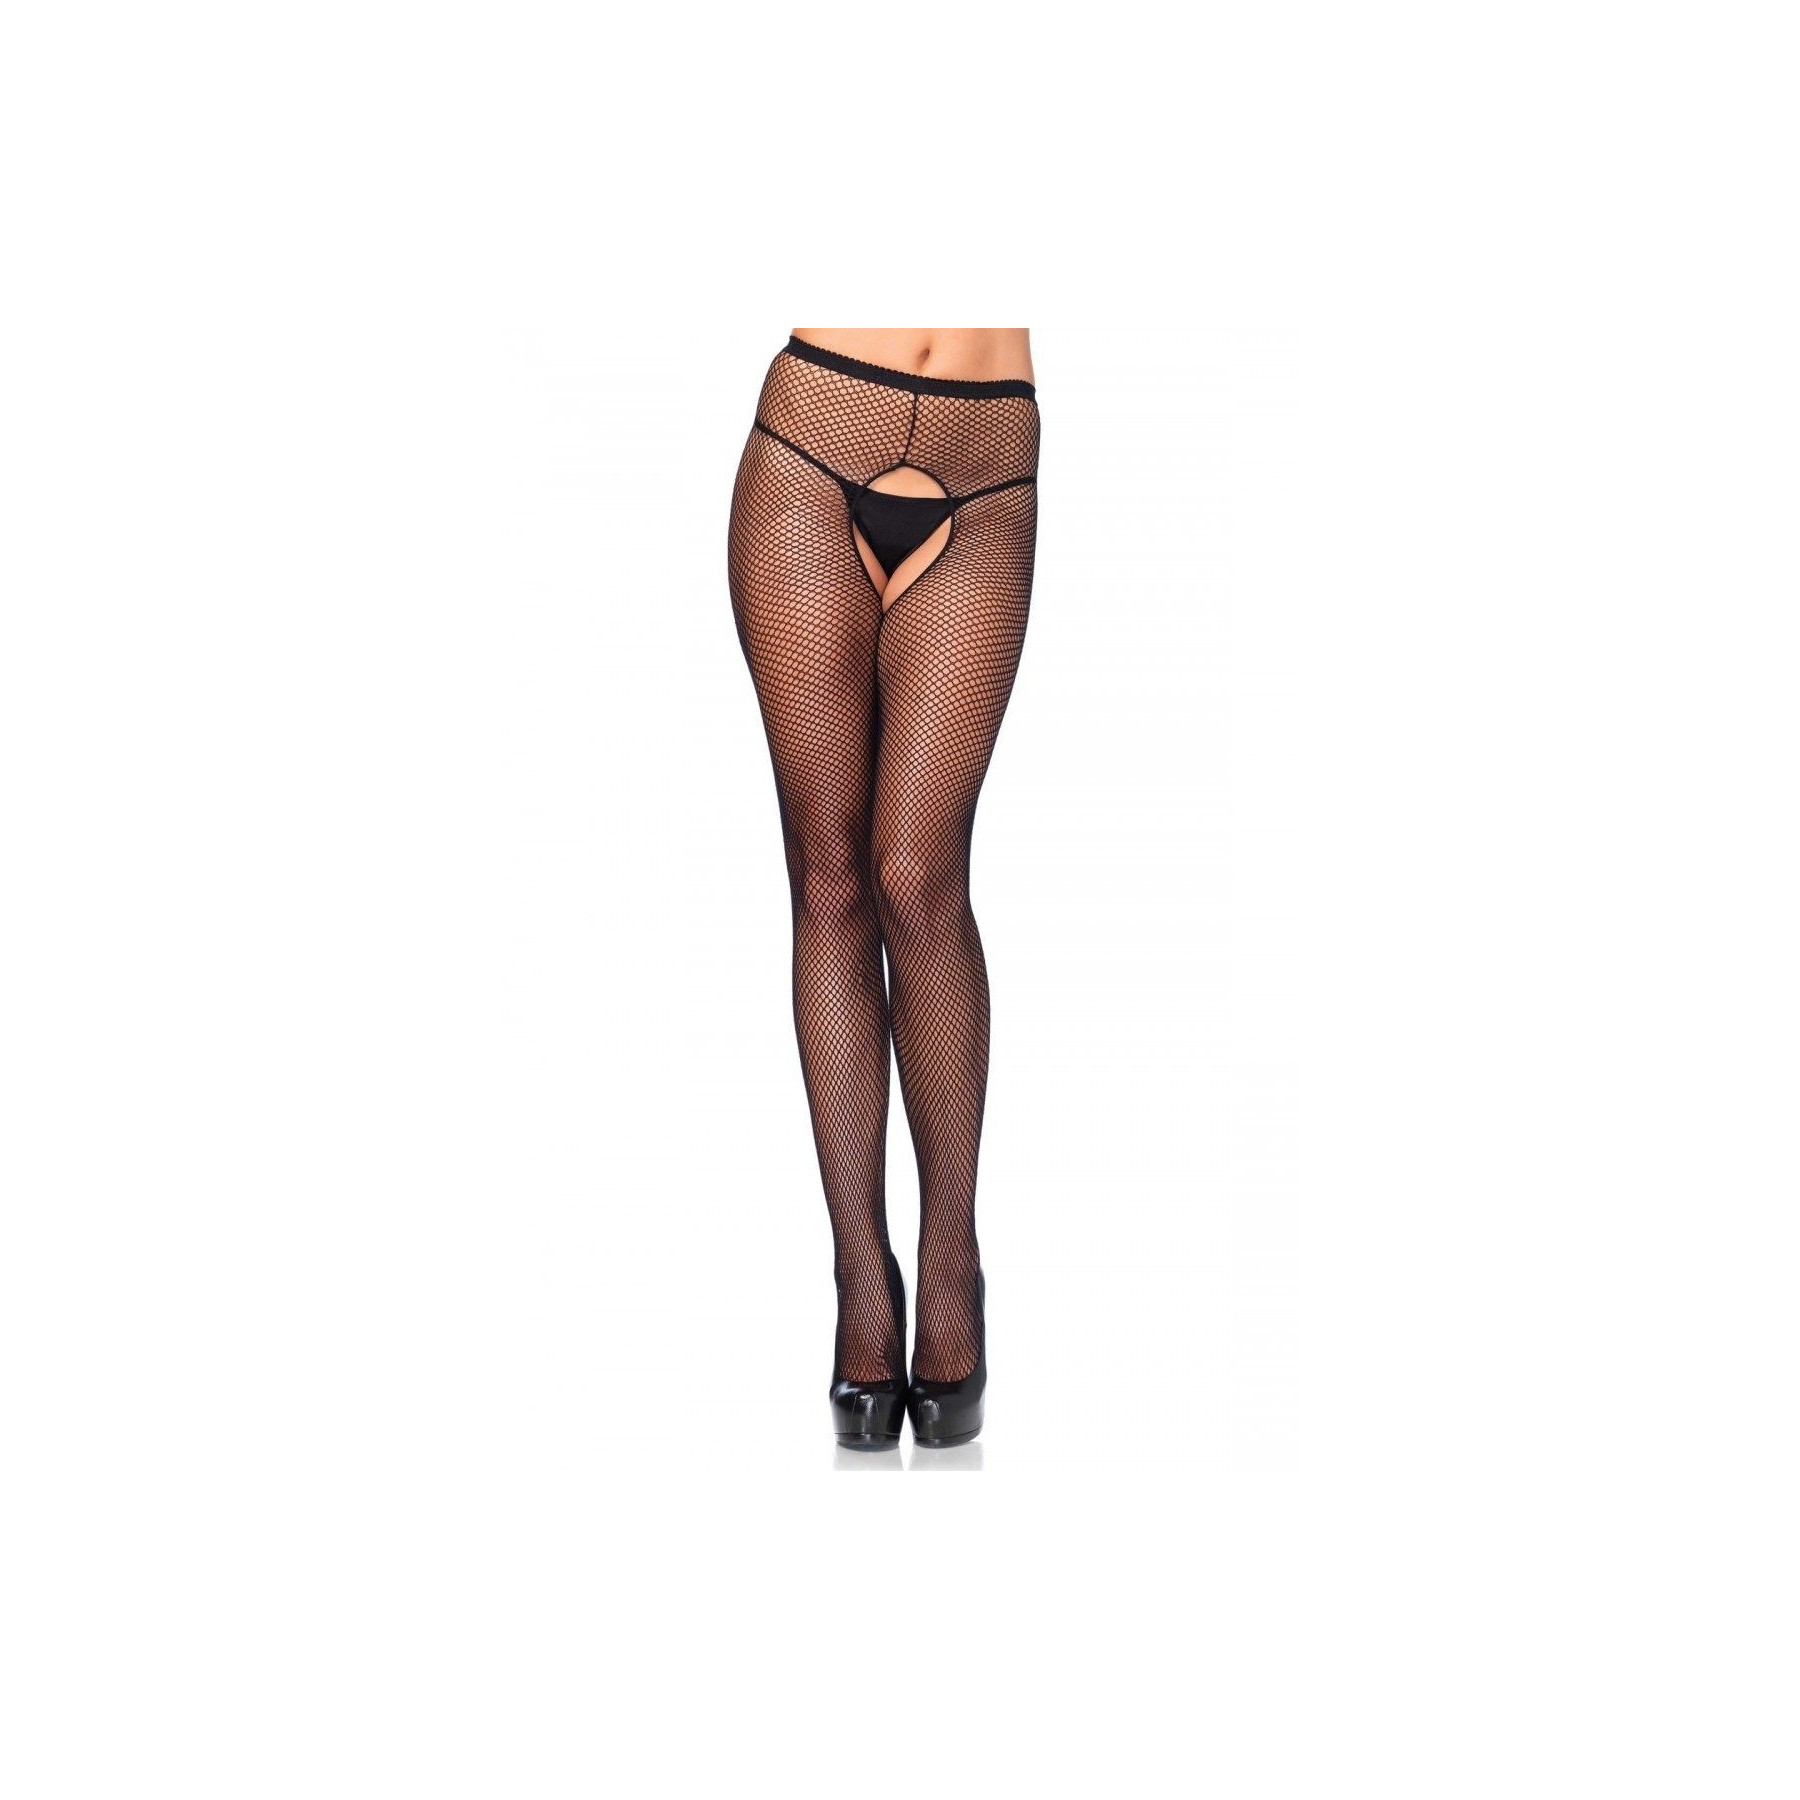 Collant ouvert in rete nera Leg Avenue